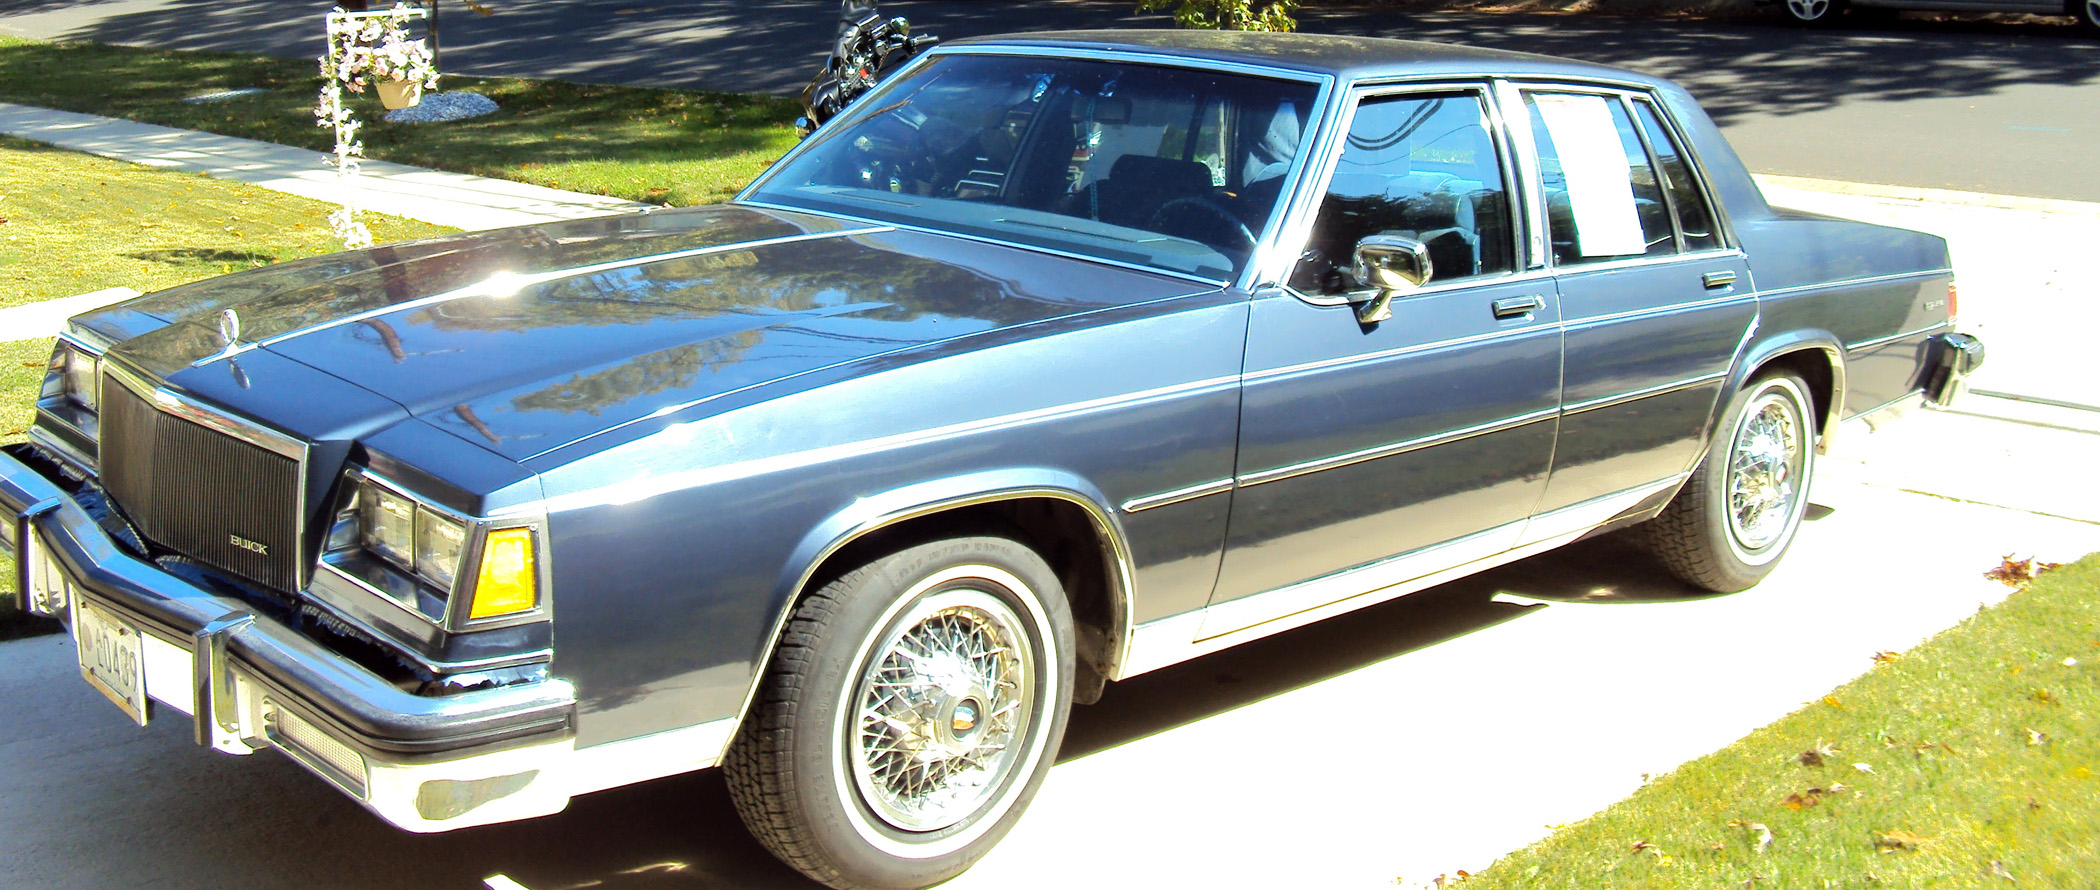 1984 Buick Lesabre Purchased For Its Rear Wheel Drive Classic